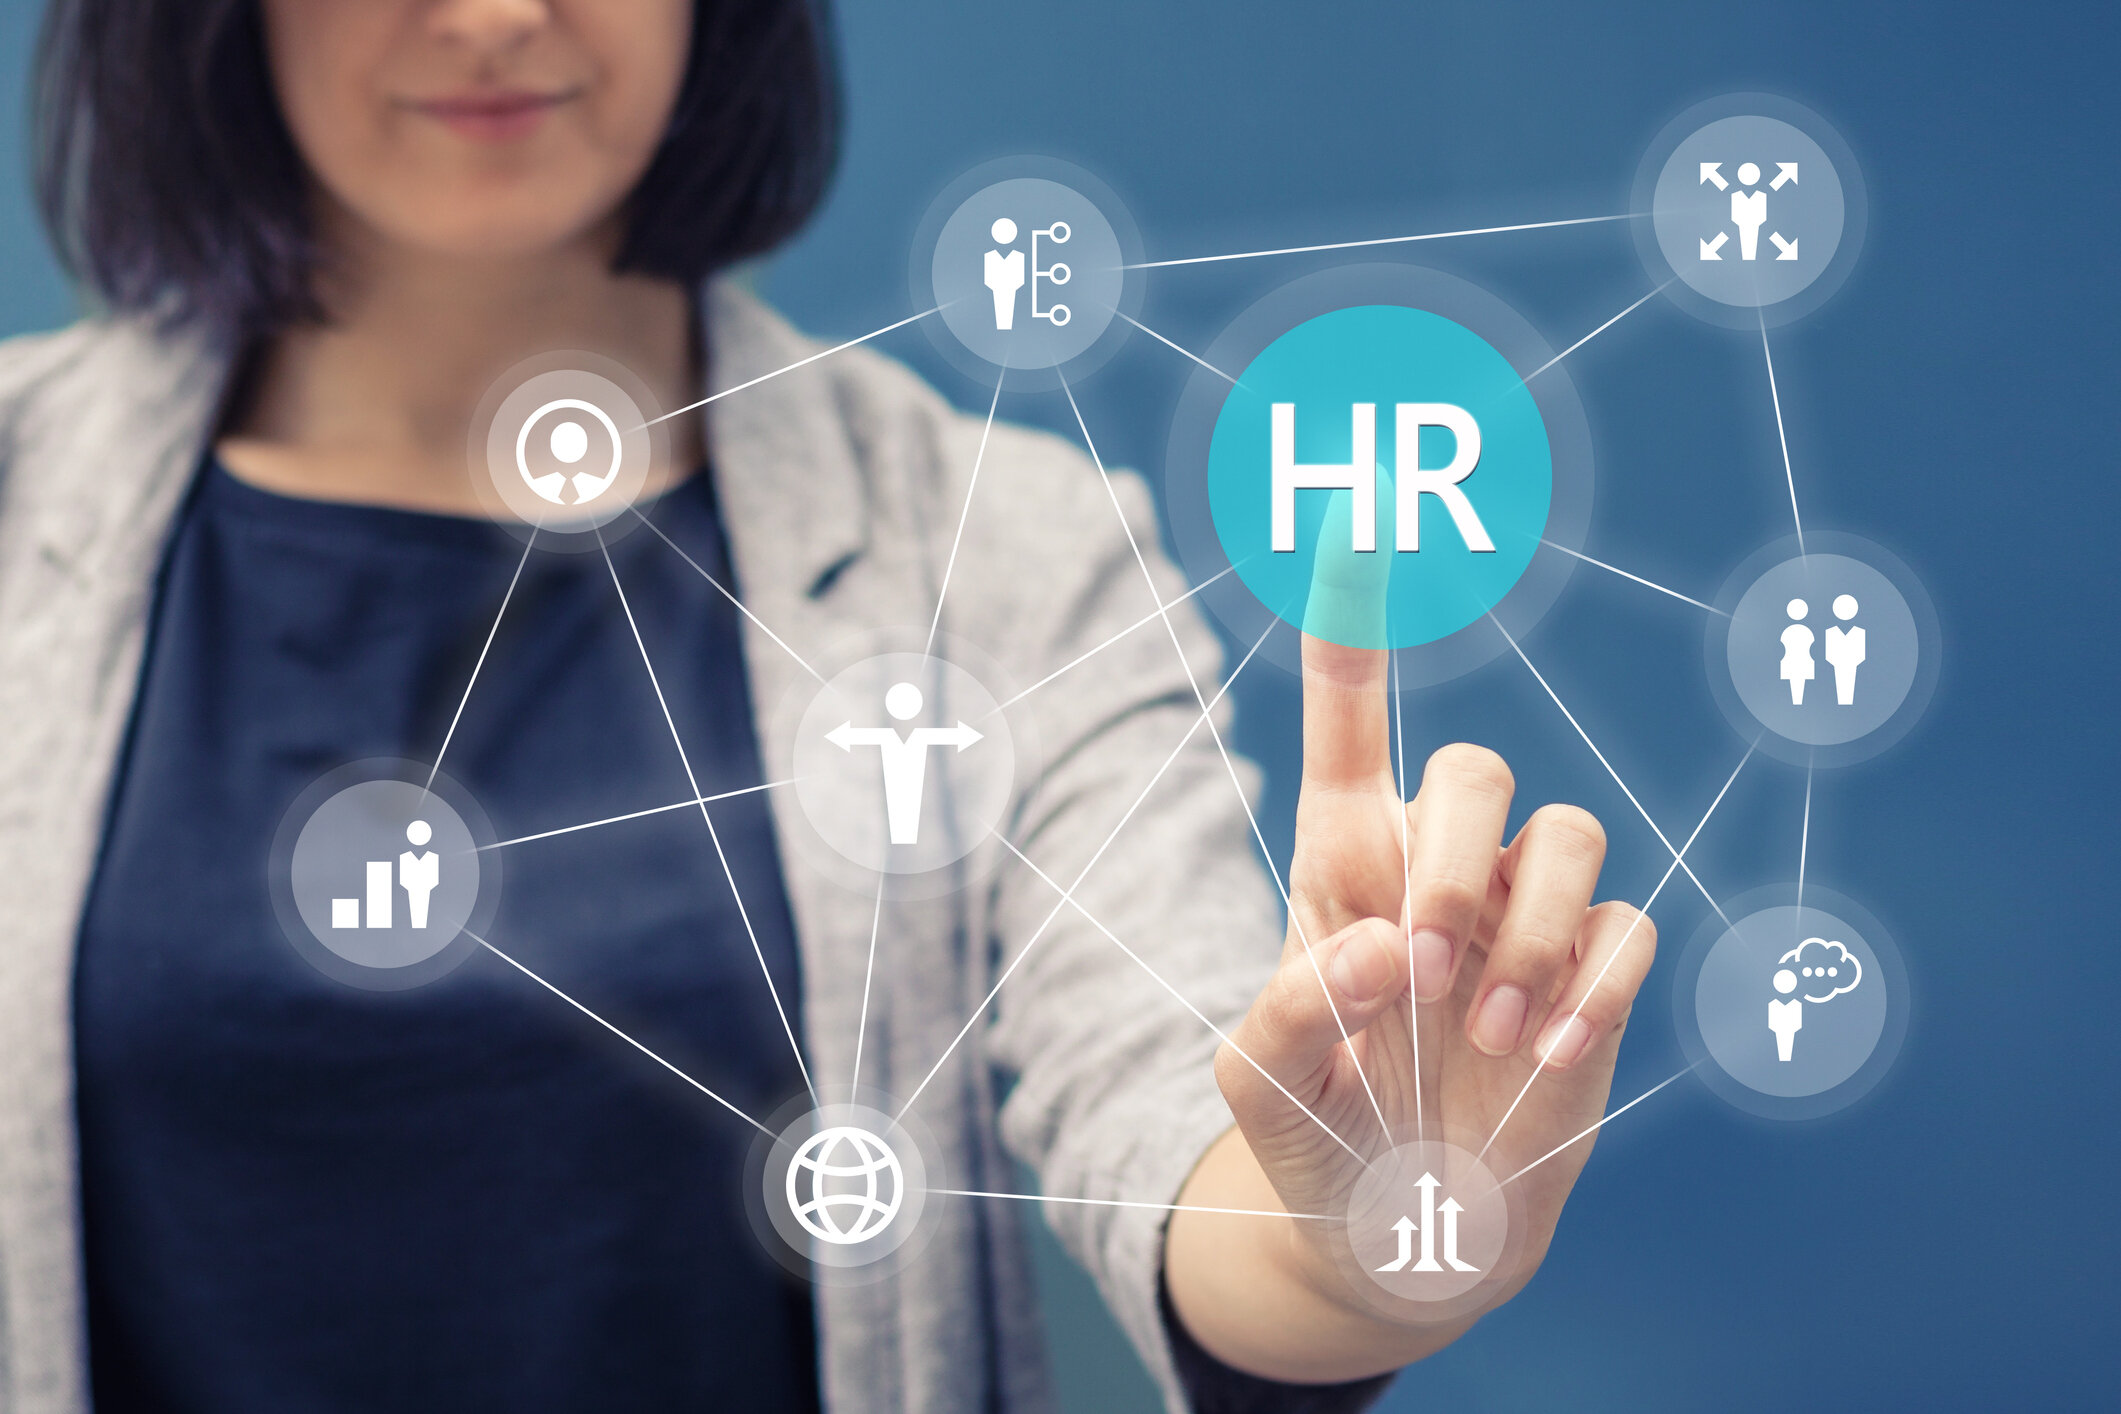 - For companies requiring ongoing Human Resource support and services, or on call support - we have packages that are customized based on need and size of your organization.